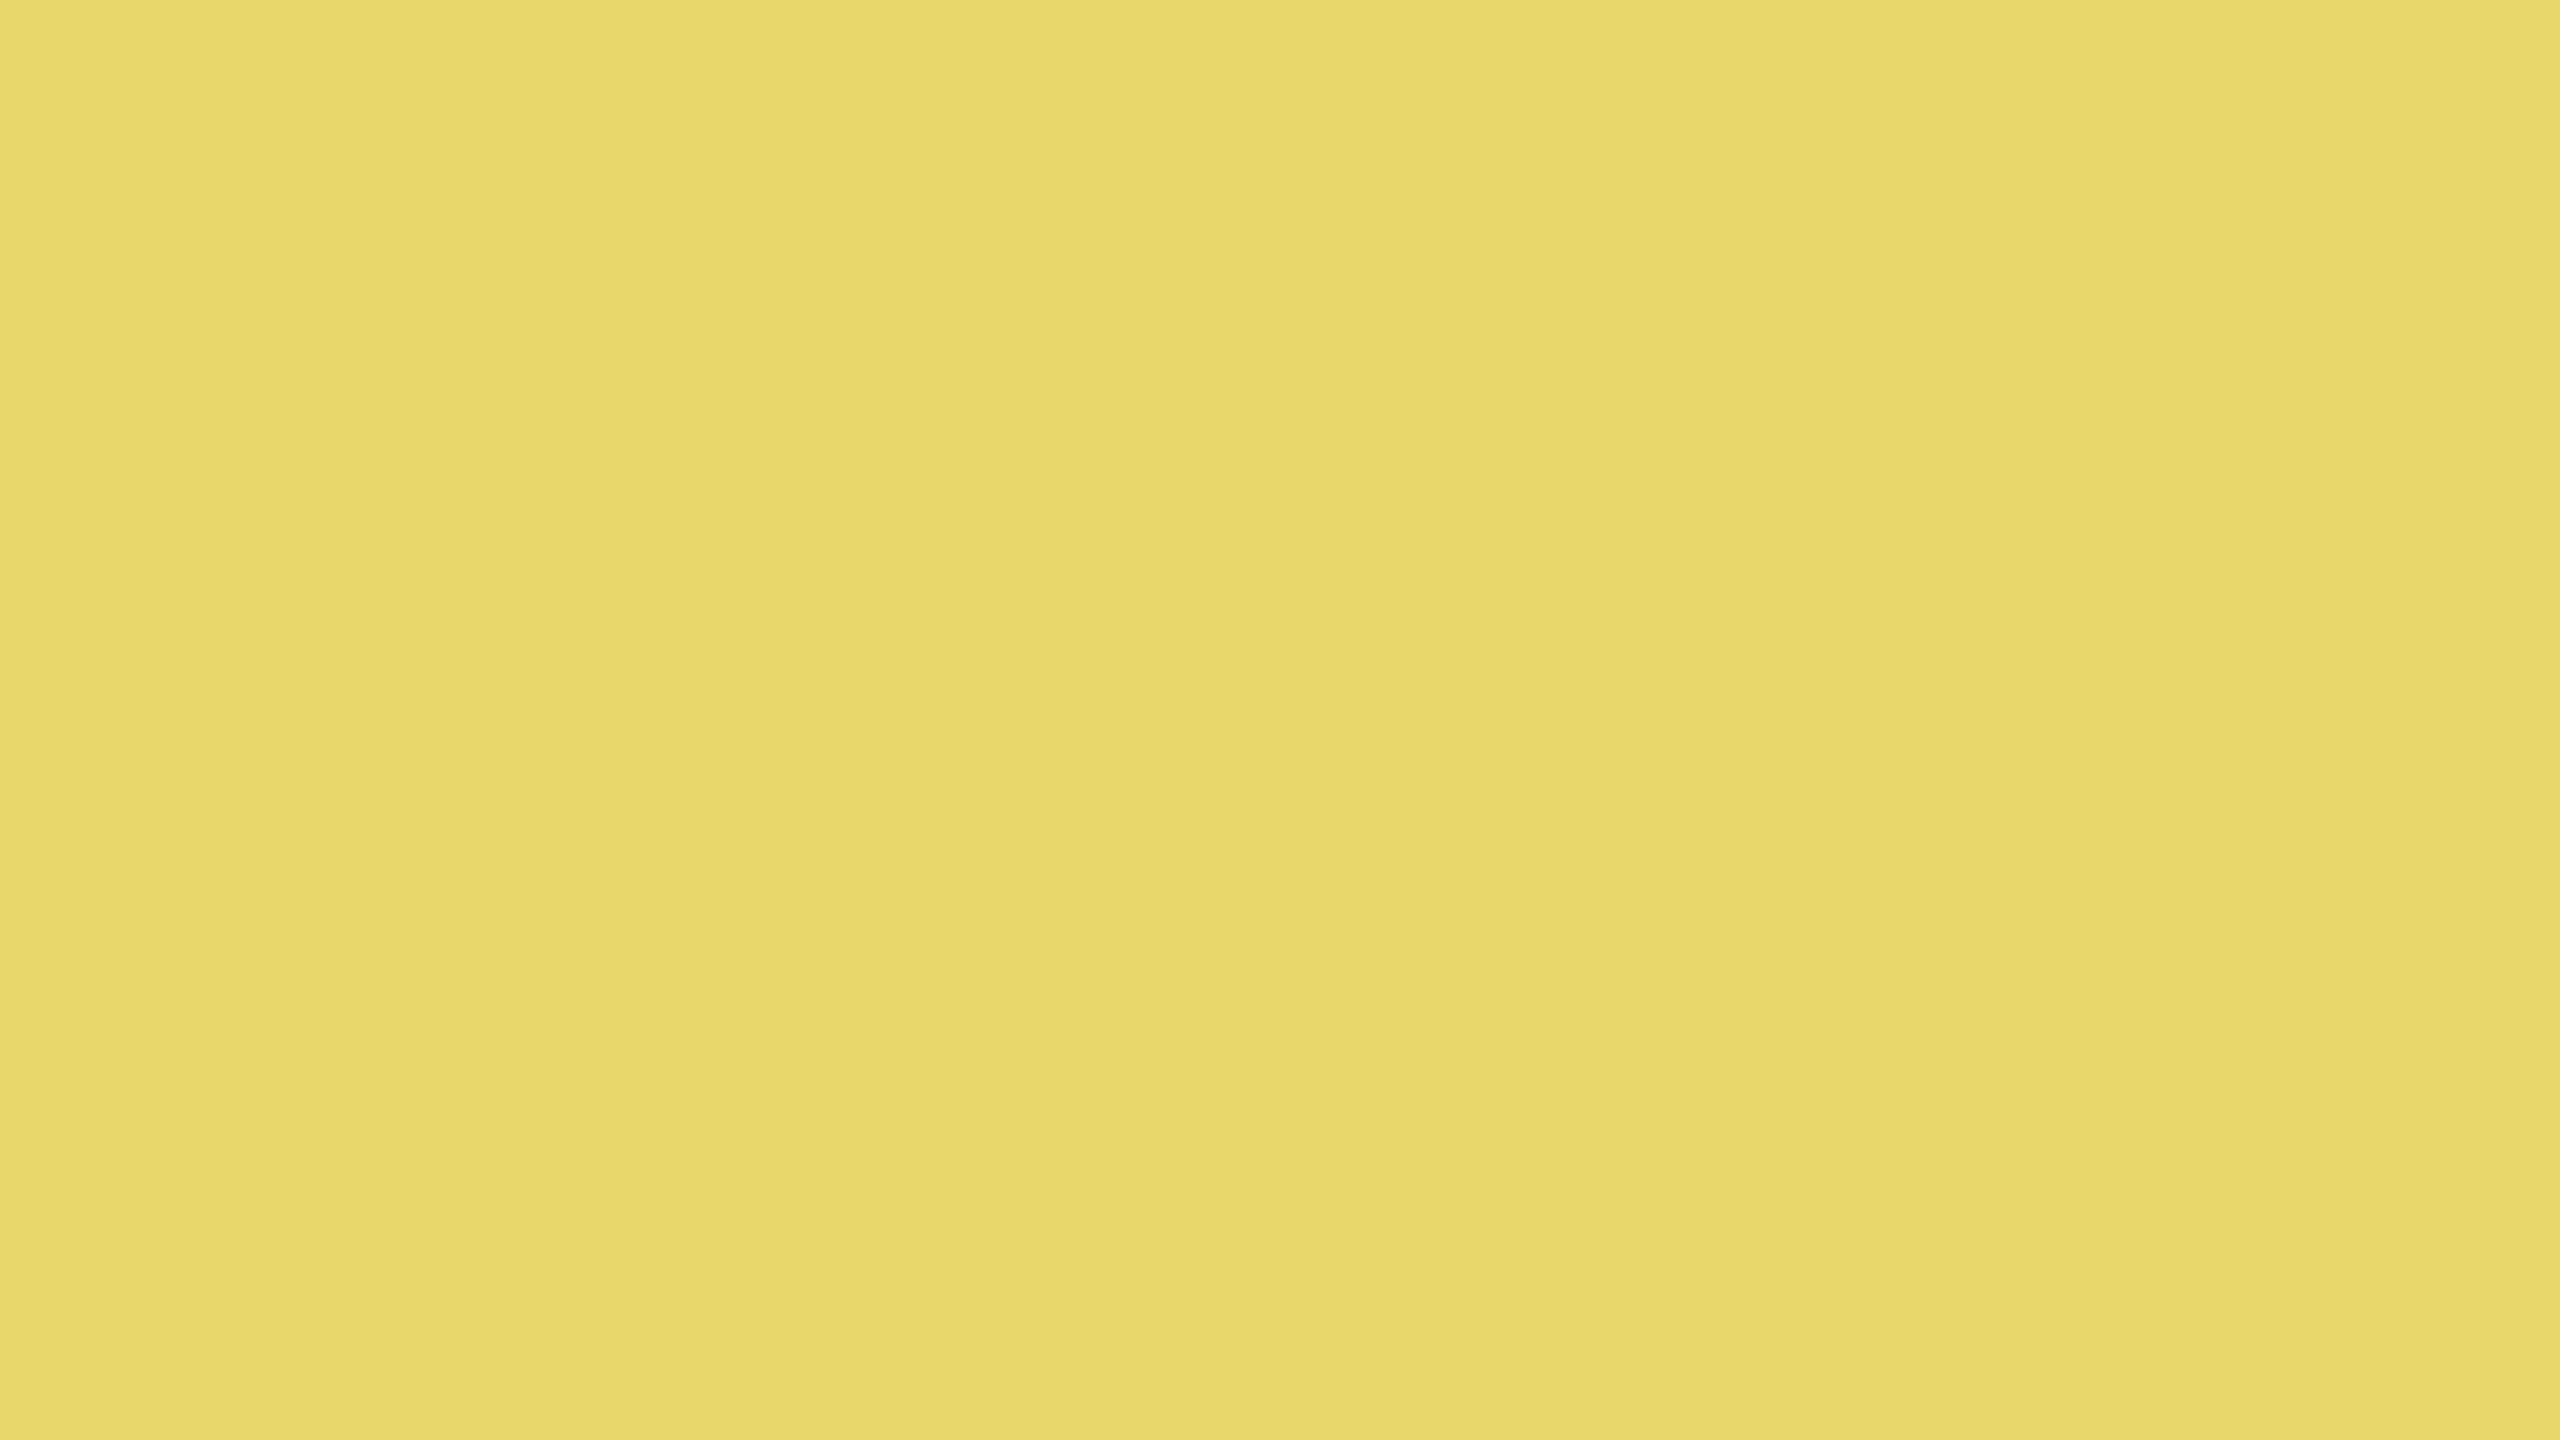 2560x1440 Arylide Yellow Solid Color Background